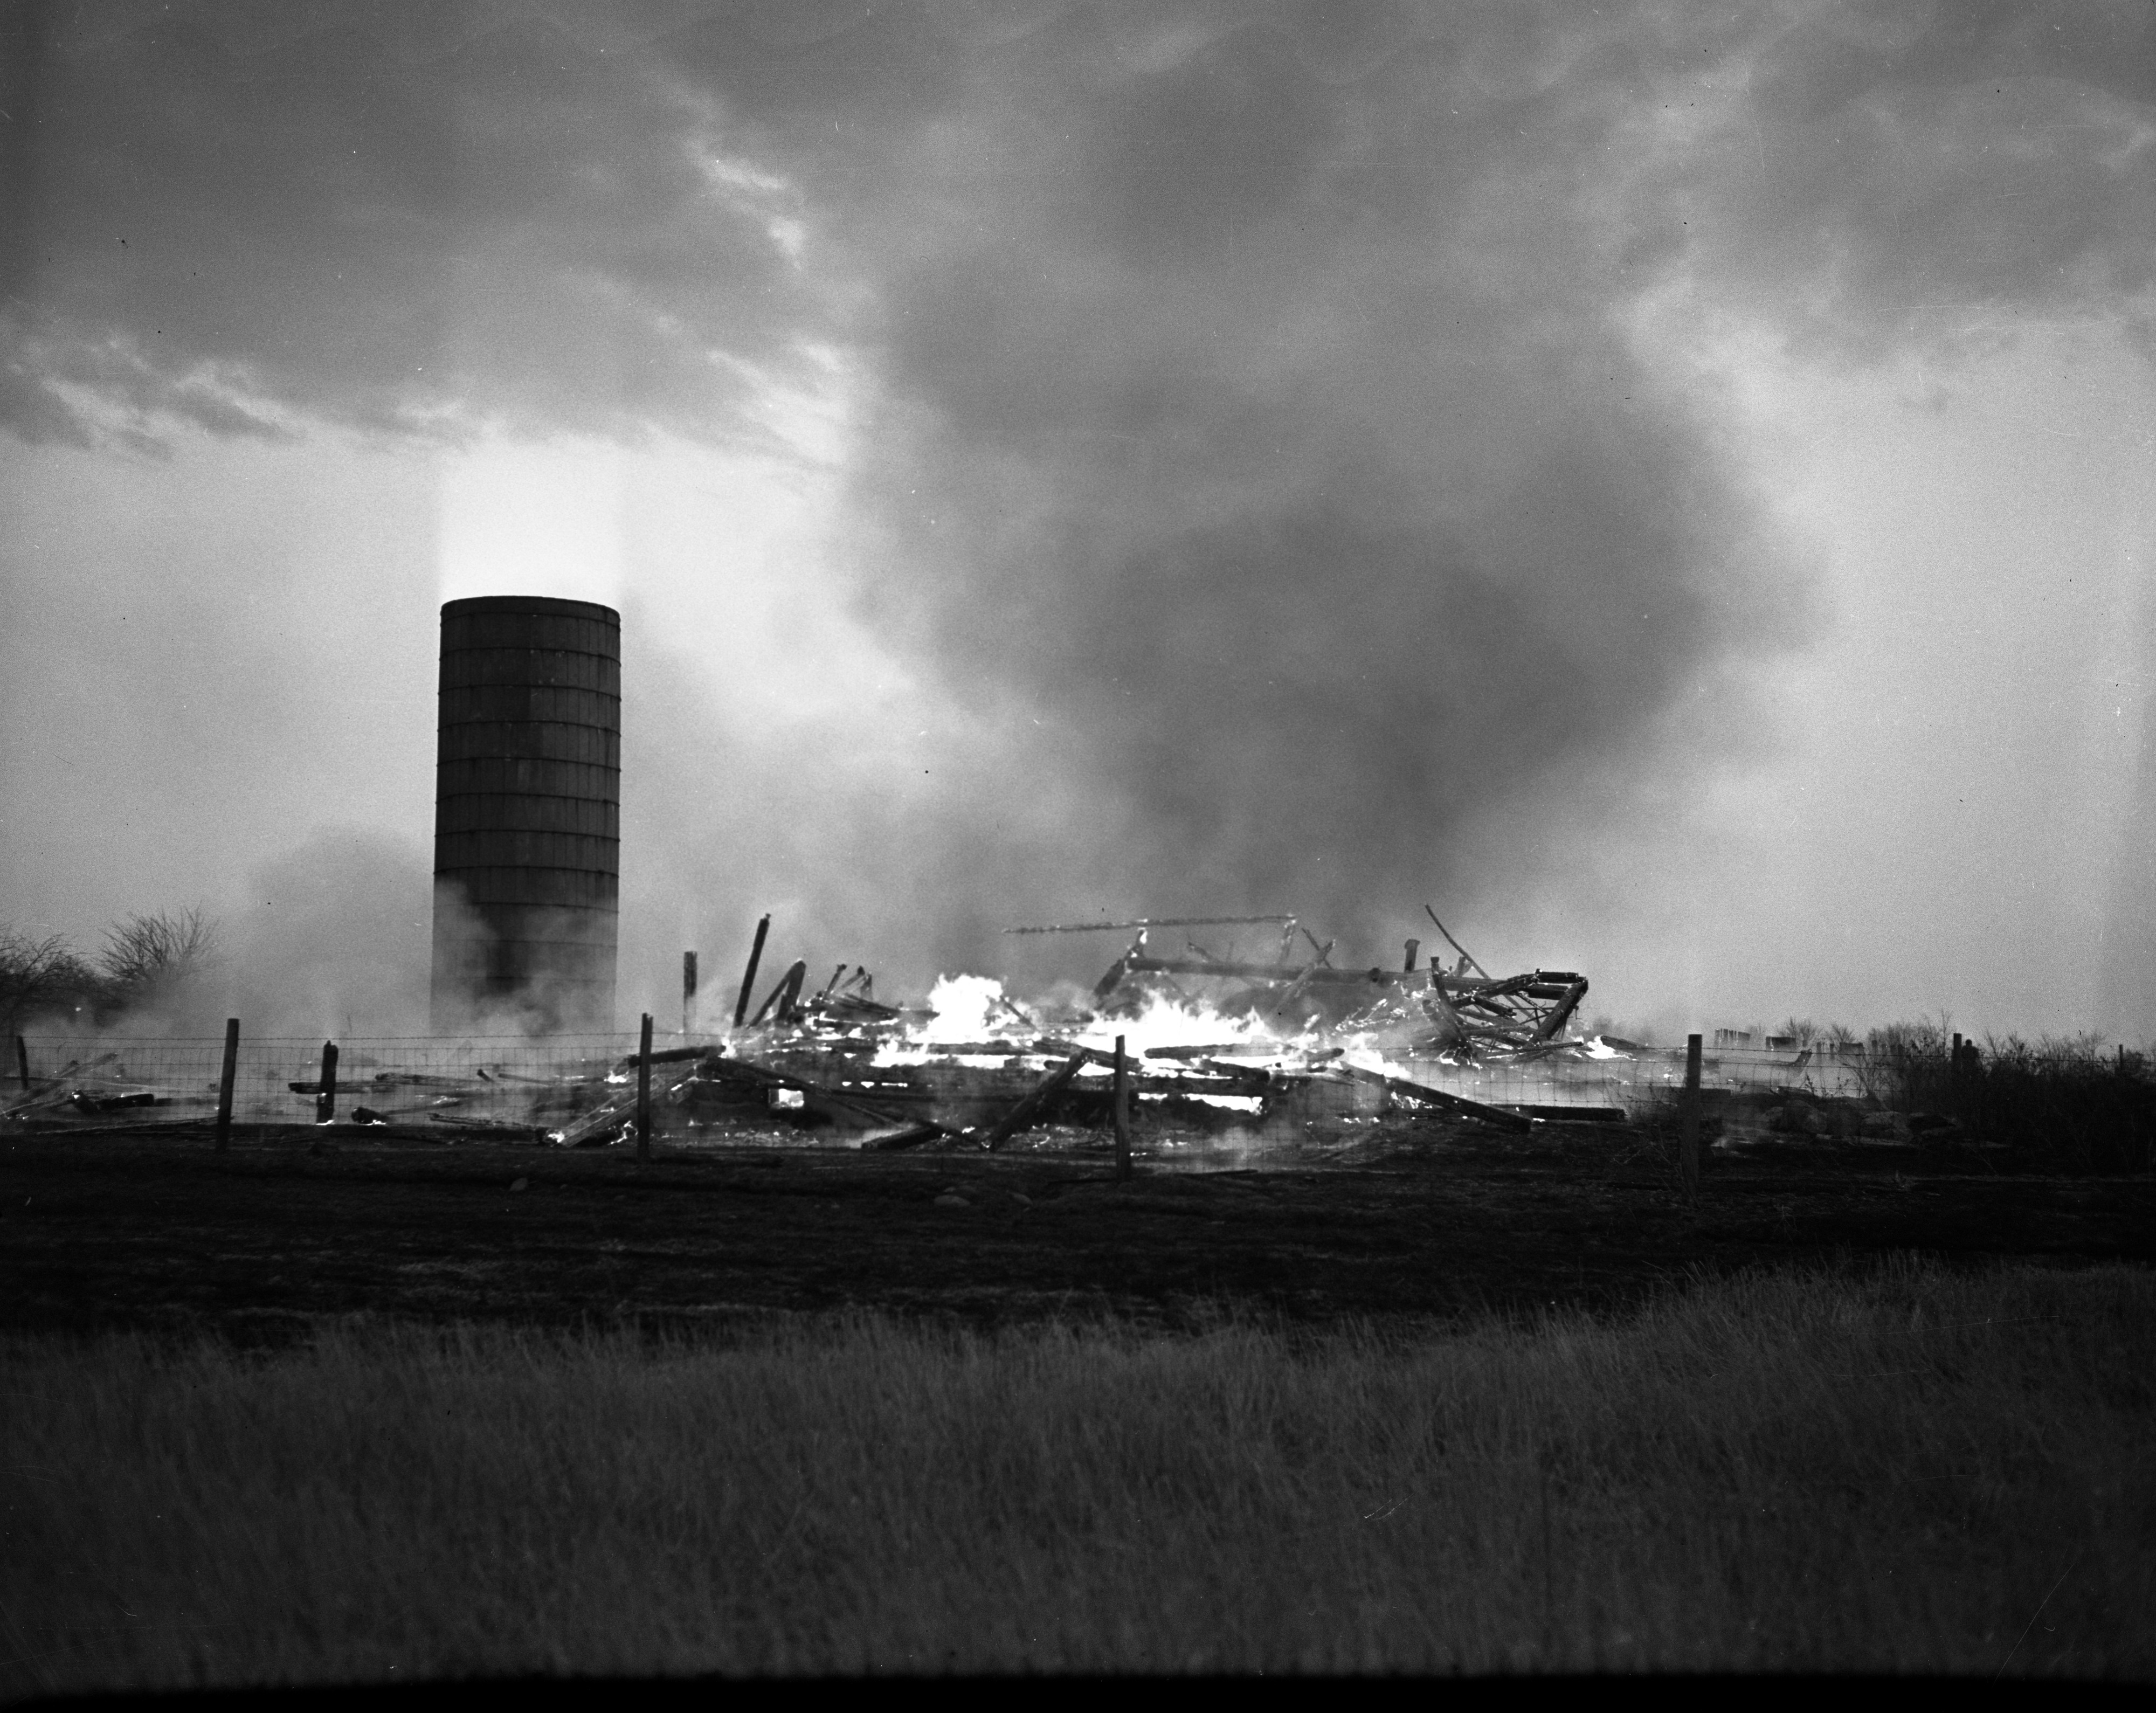 Barn on fire, Earhart Road, March 1949 image